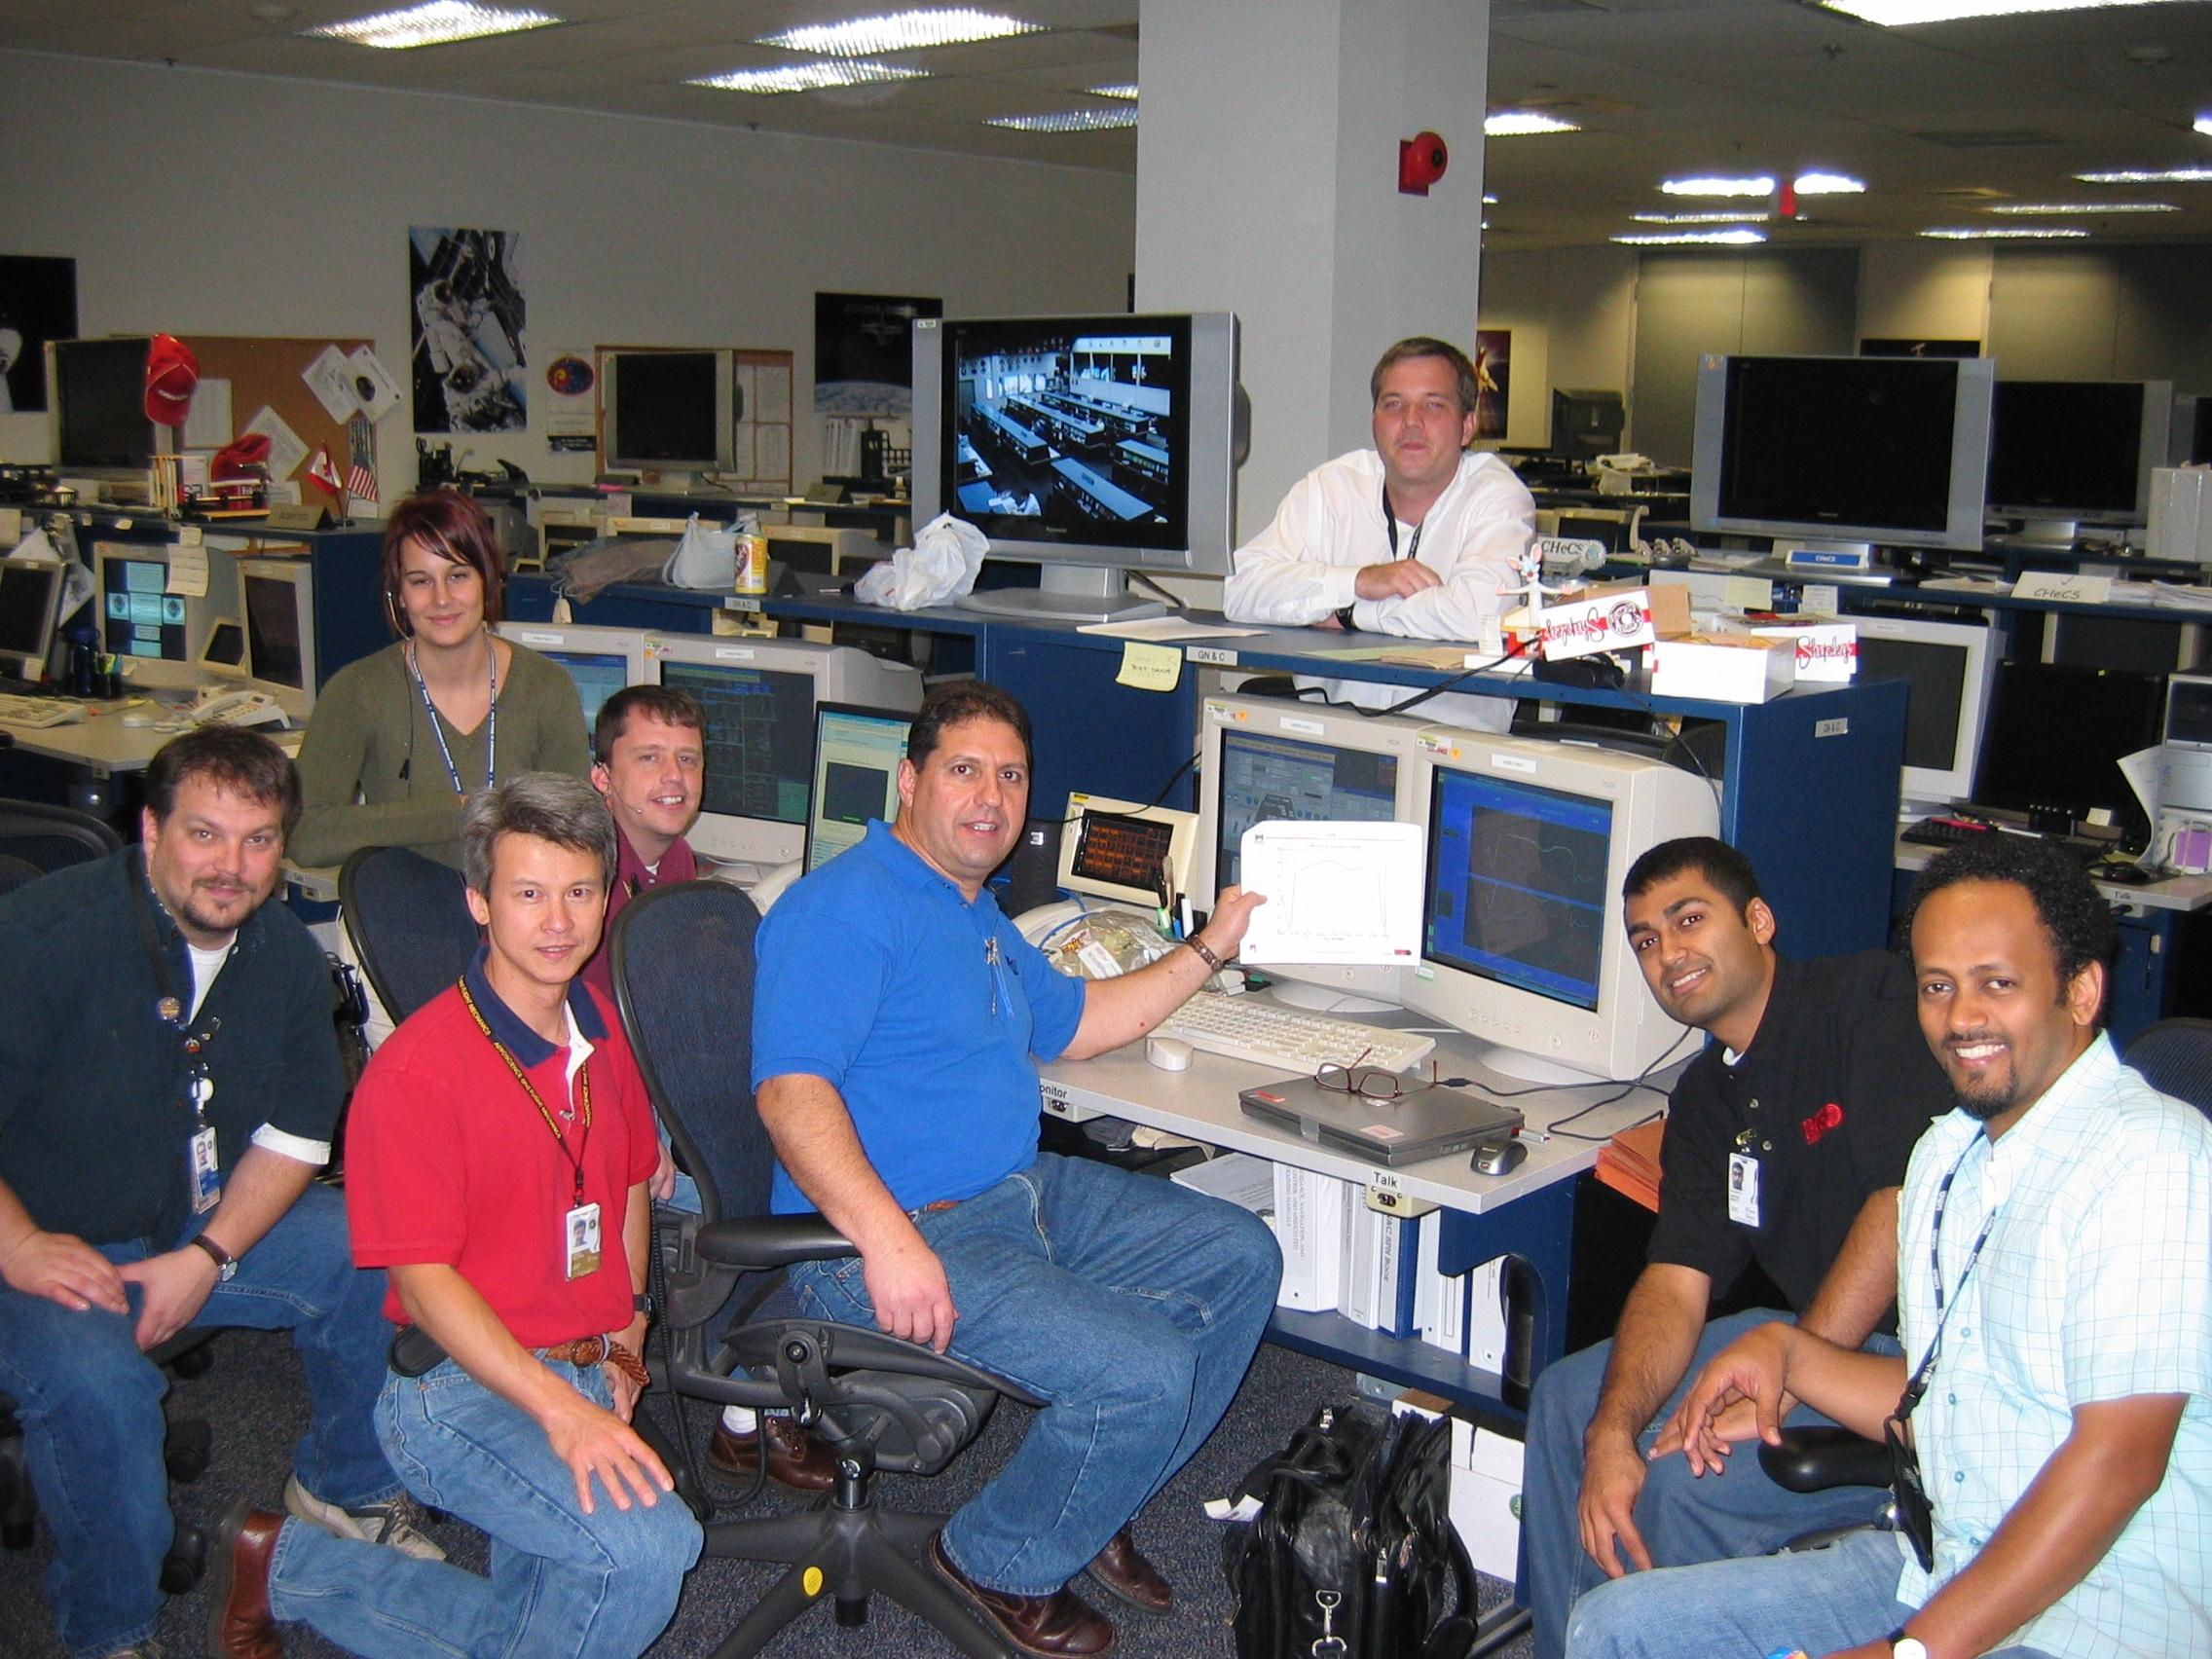 NASA Control Room Employees - Pics about space